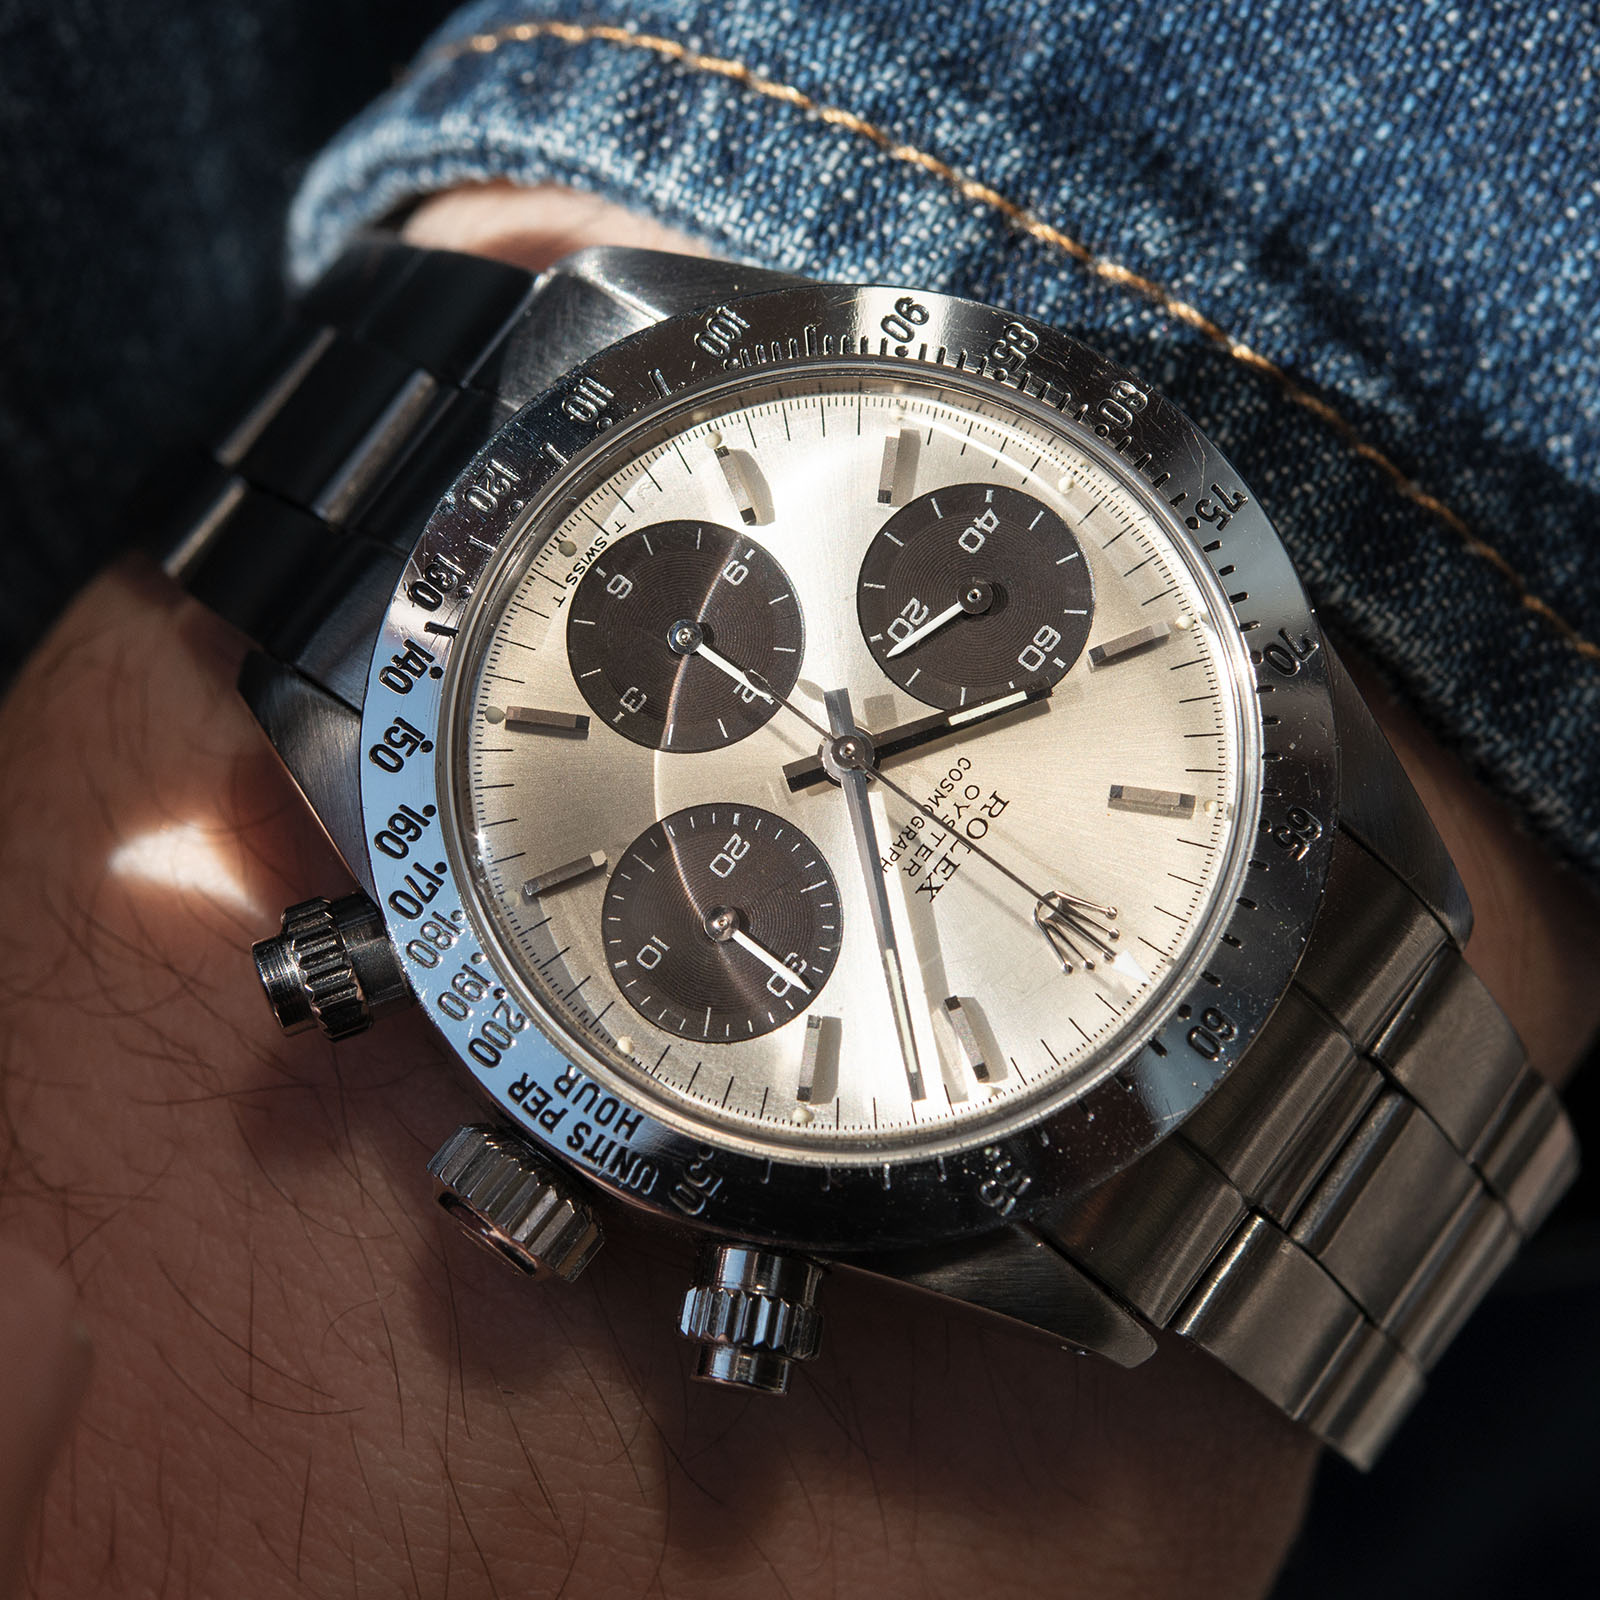 https://bulangandsons.com/collections/watches/products/rolex-daytona-6265-big-eye-silver-dial-w835